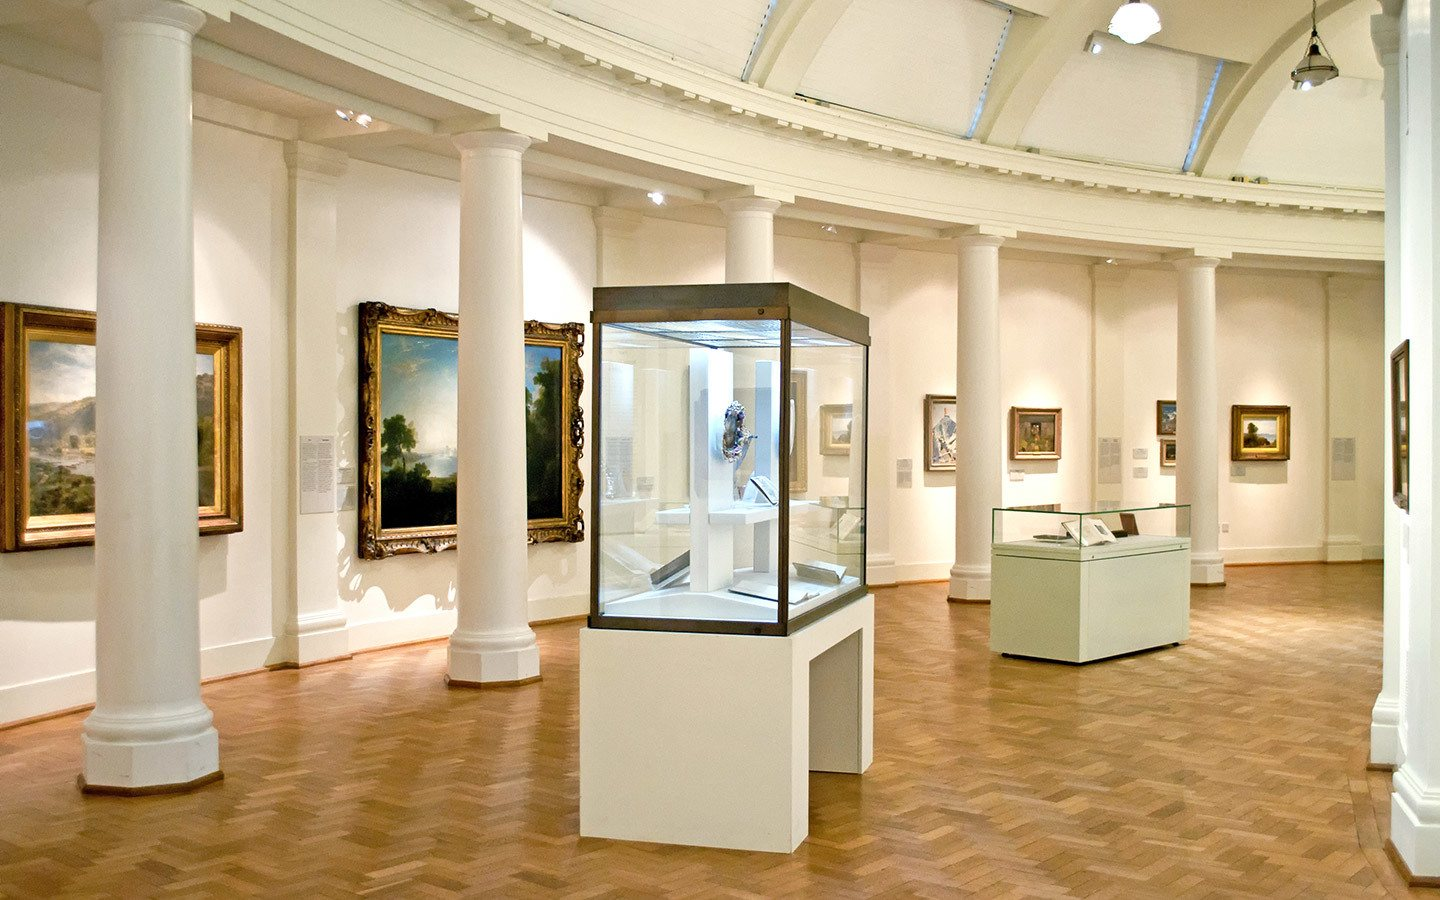 Inside the art galleries at the Cardiff Museum, Wales